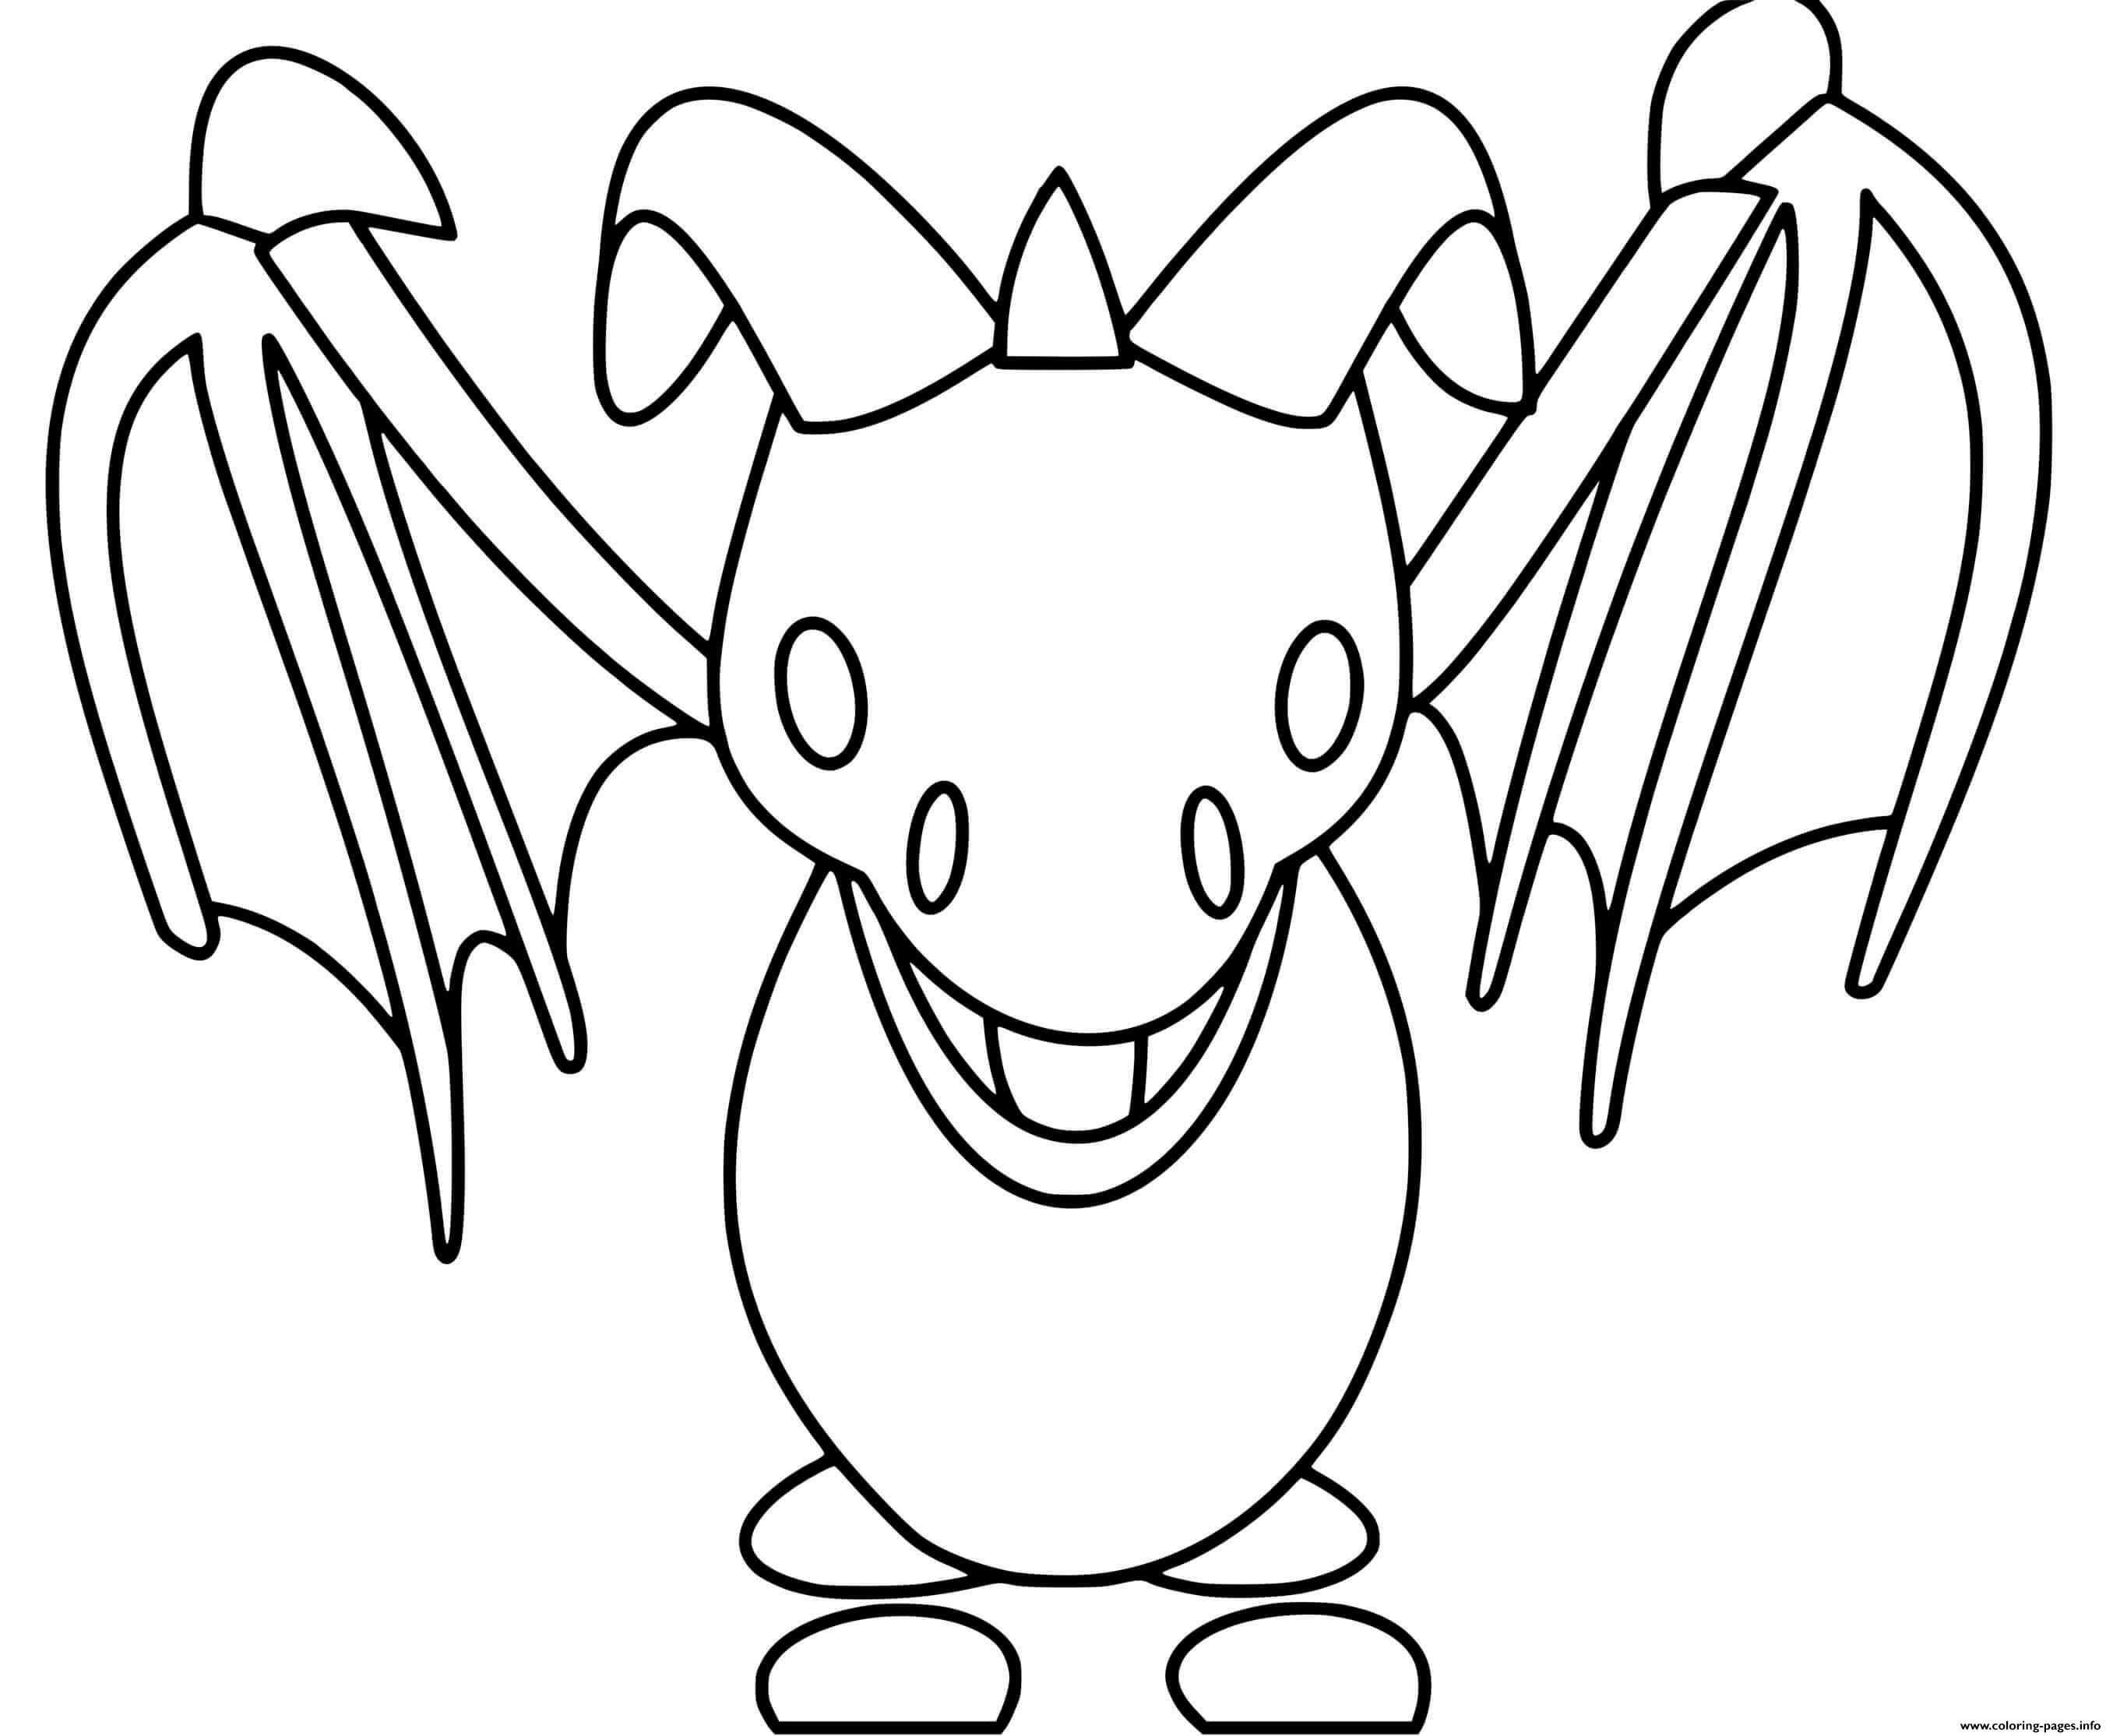 Roblox Adopt Me Frost Dragon Fly Coloring Pages Printable